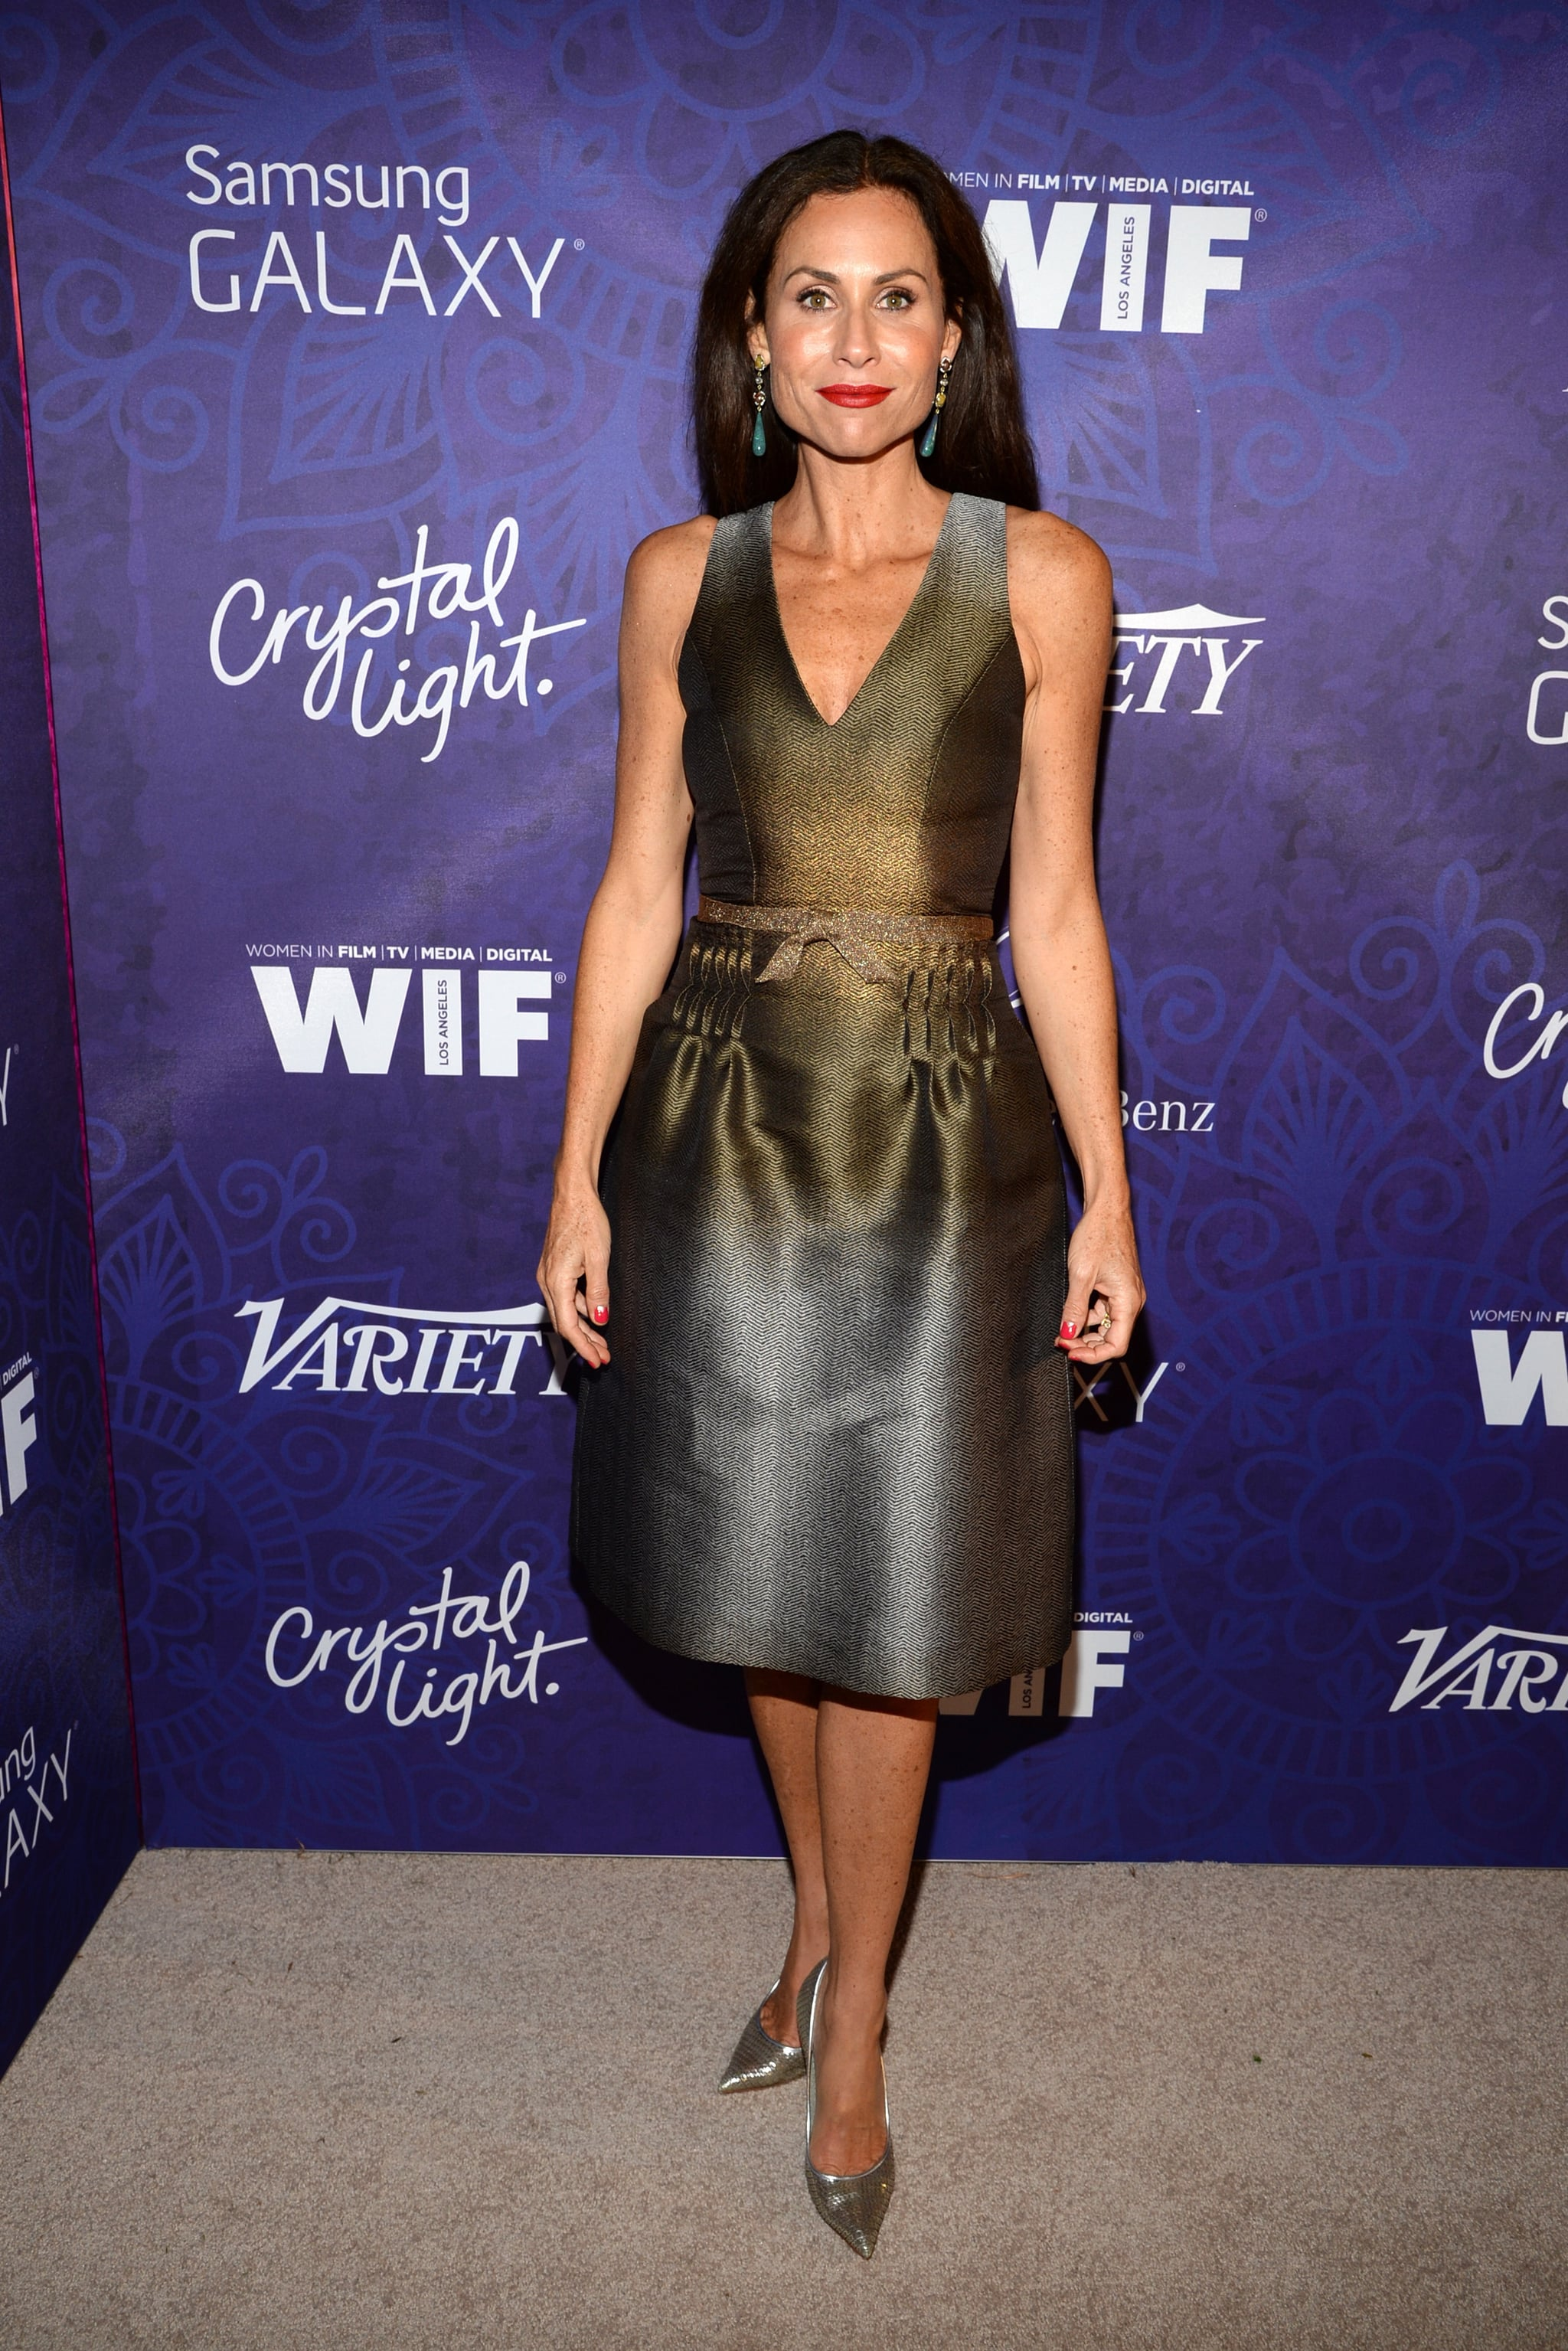 Minnie Driver dropped by Variety's party on Saturday.